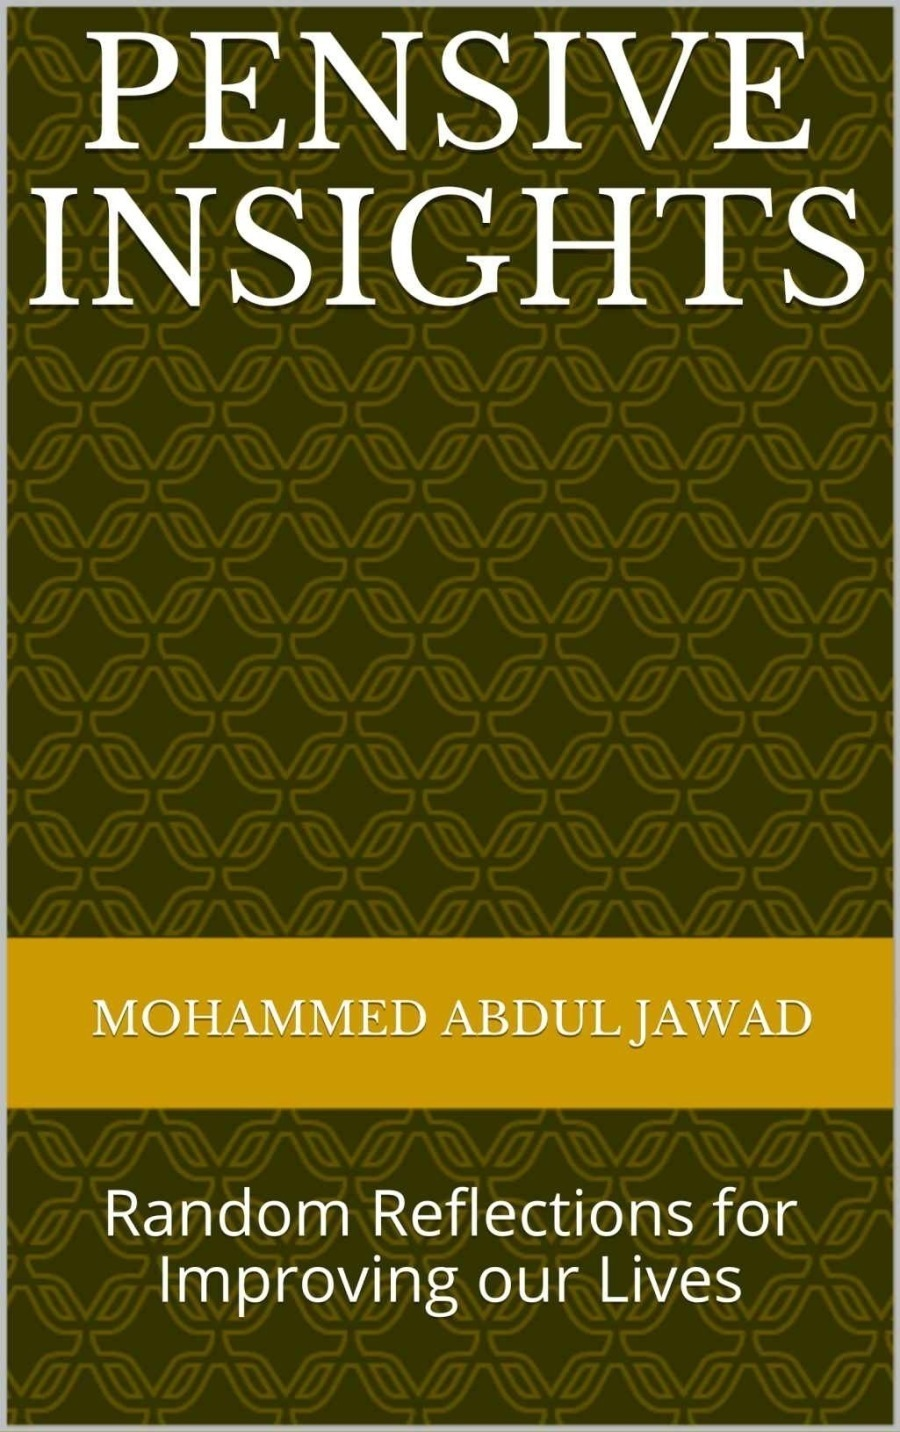 'Pensive Insights' - FREE Book Promotion - Get Your Free Copy NowPENSIVE INSIGHTS     Random Reflections for Improving our Lives